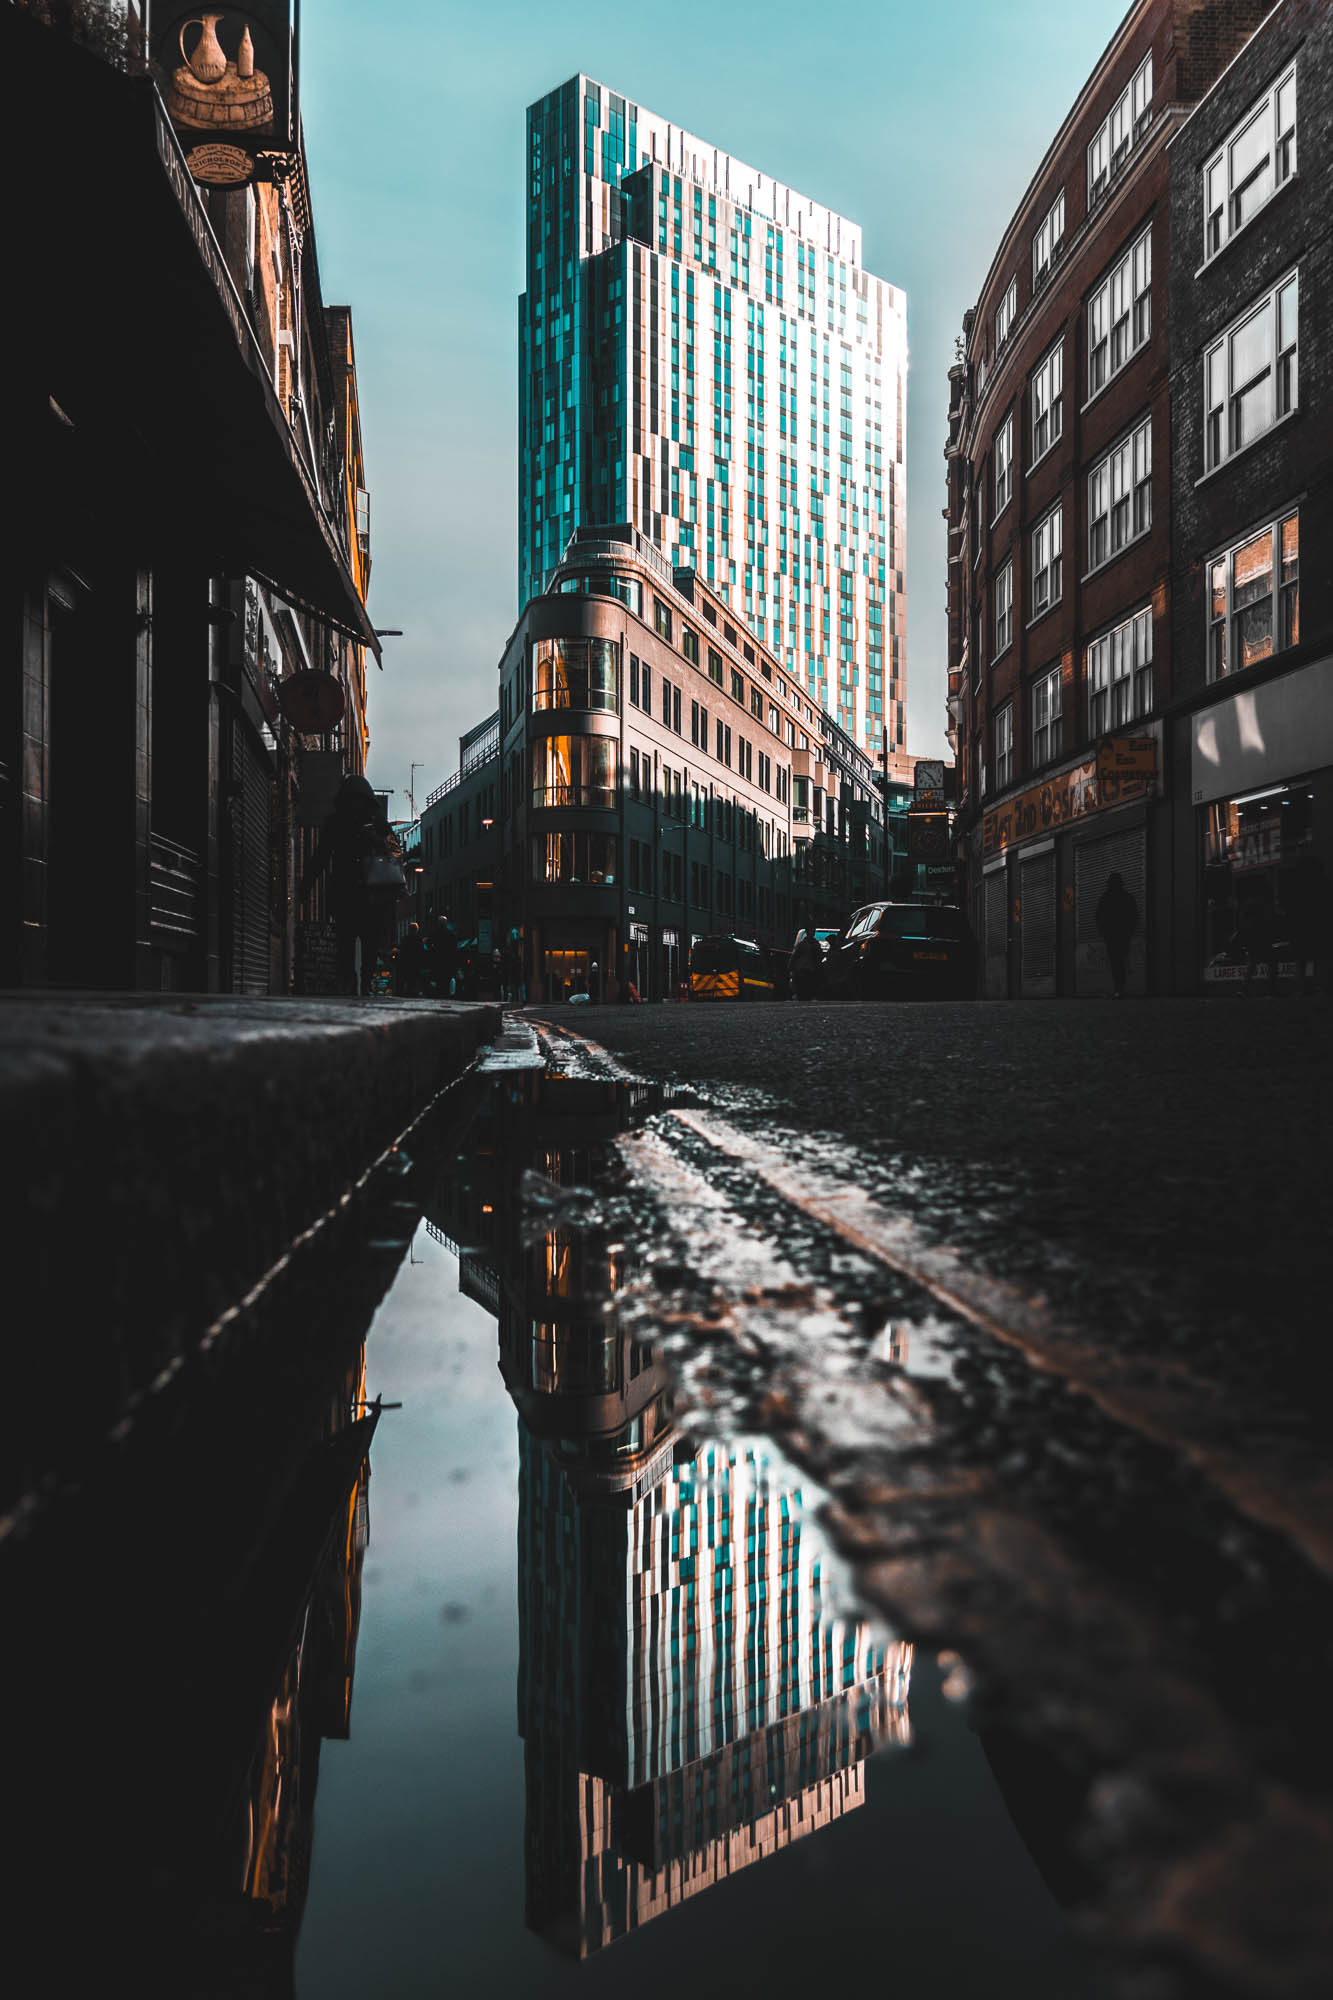 On a bright day in London, a building is reflected in the puddles that remain from the storm the night before.